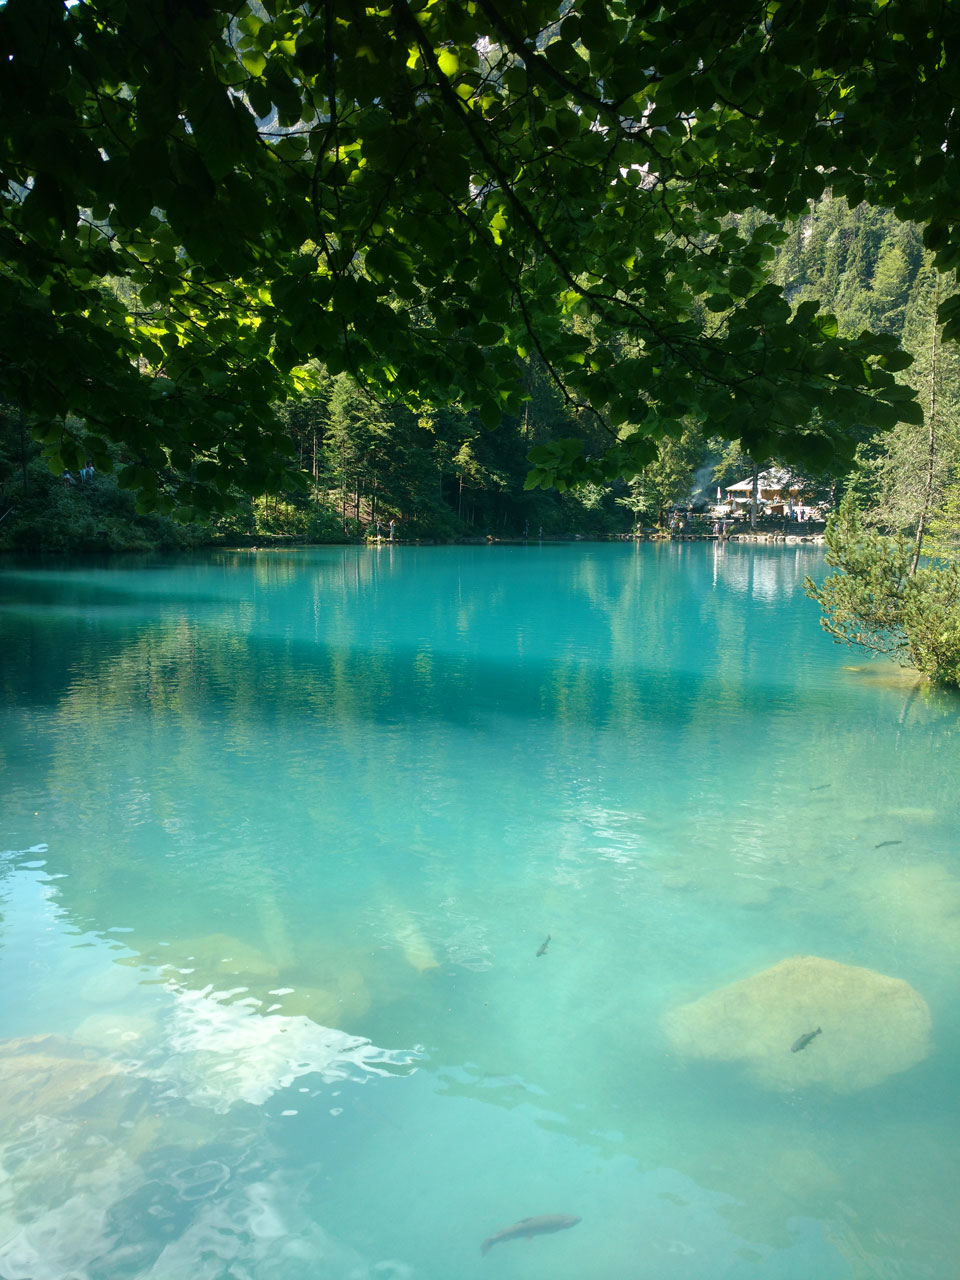 Blausee - crystal lake